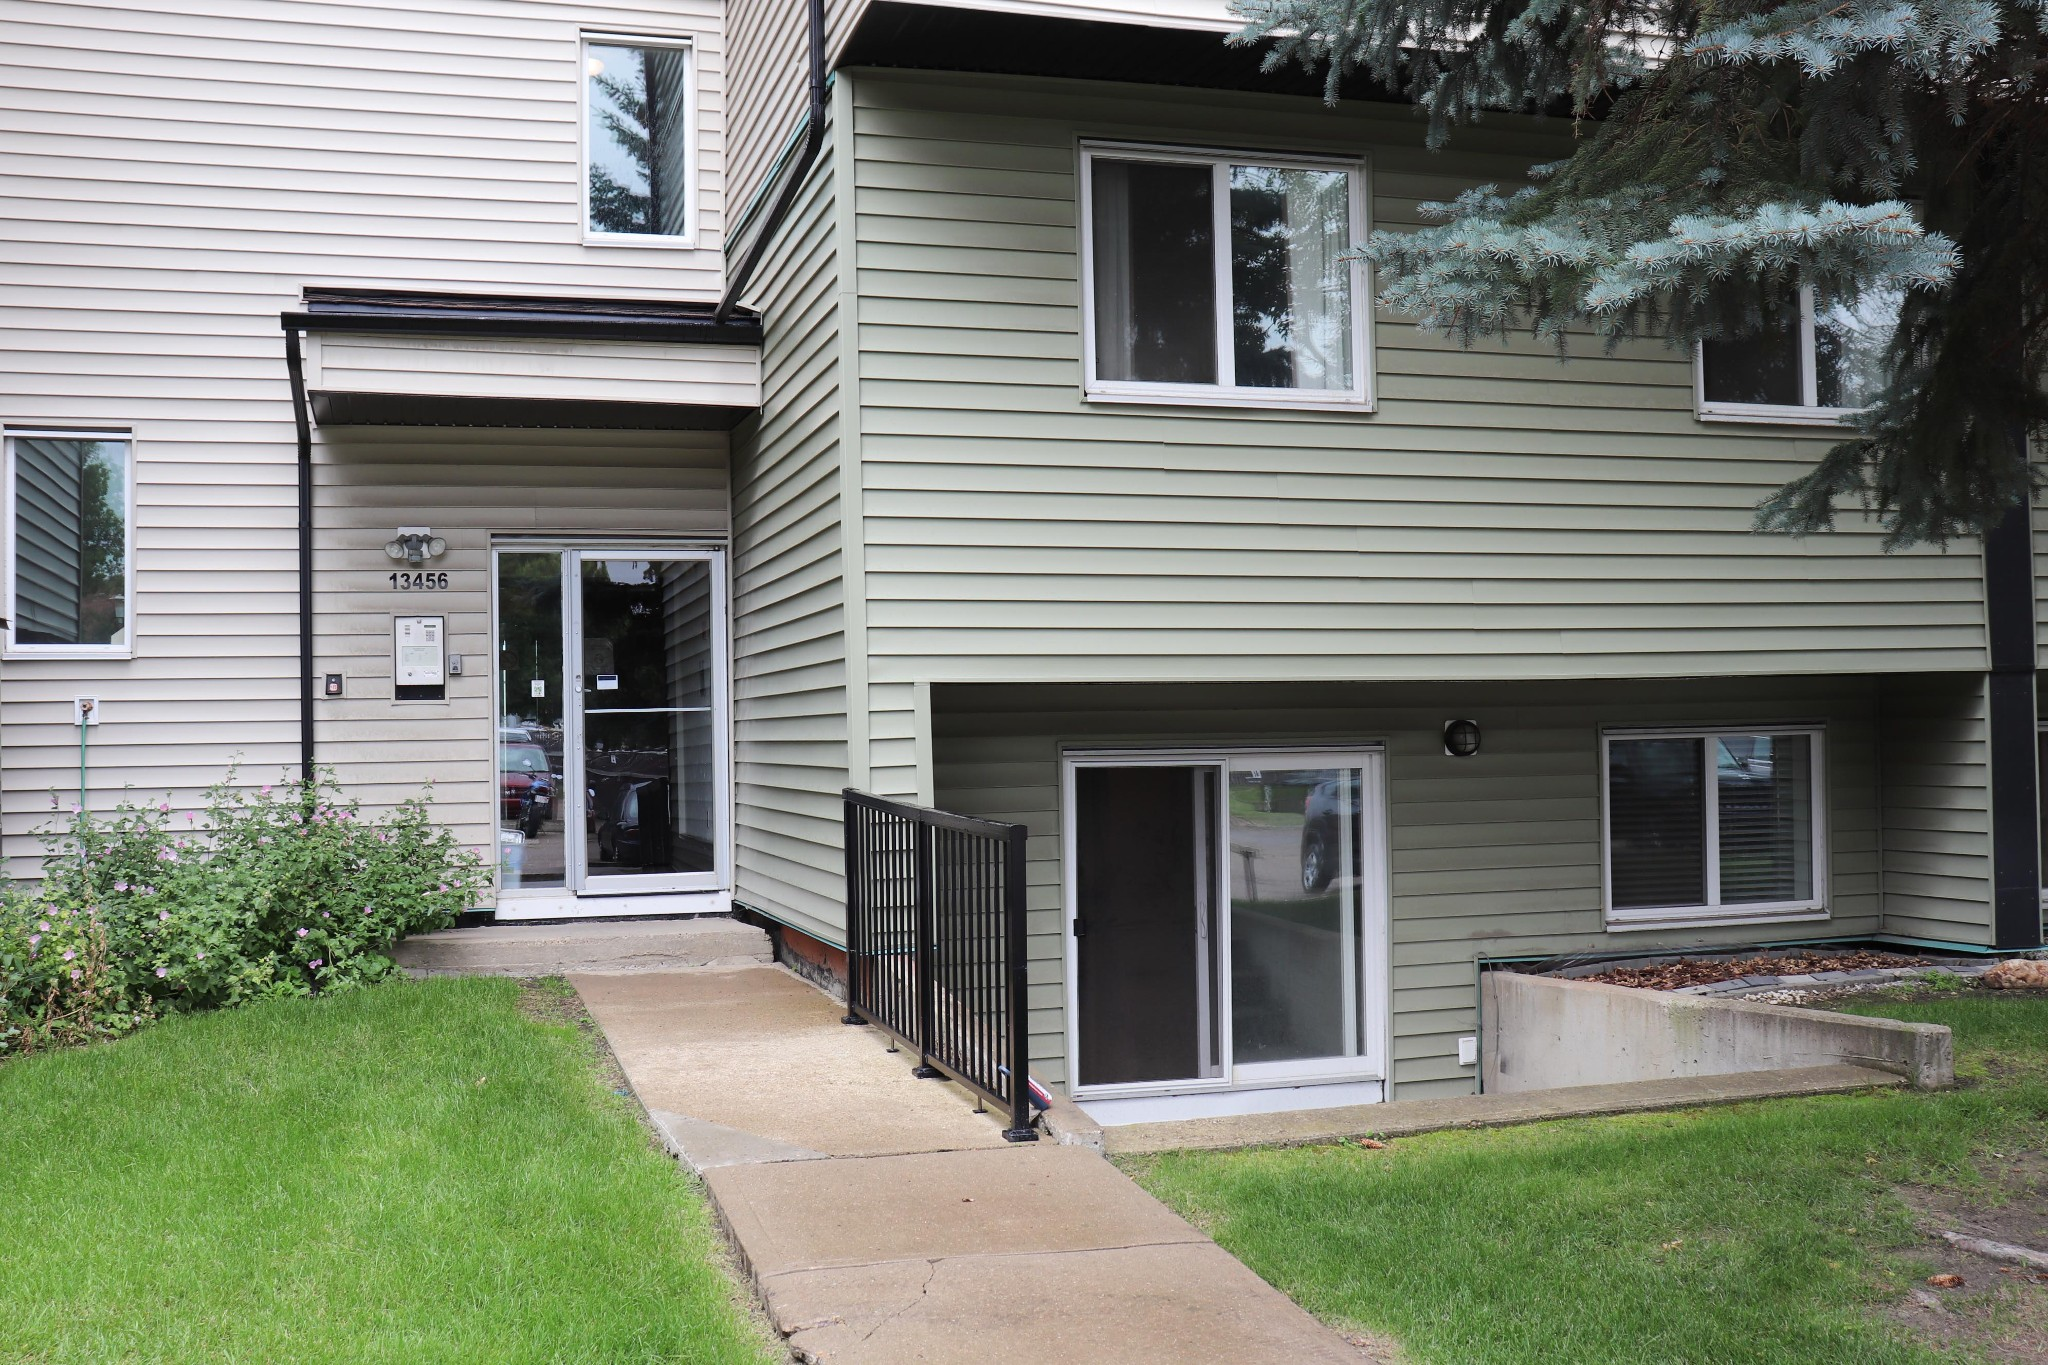 FEATURED LISTING: 4 13456 Fort Road Northwest Edmonton